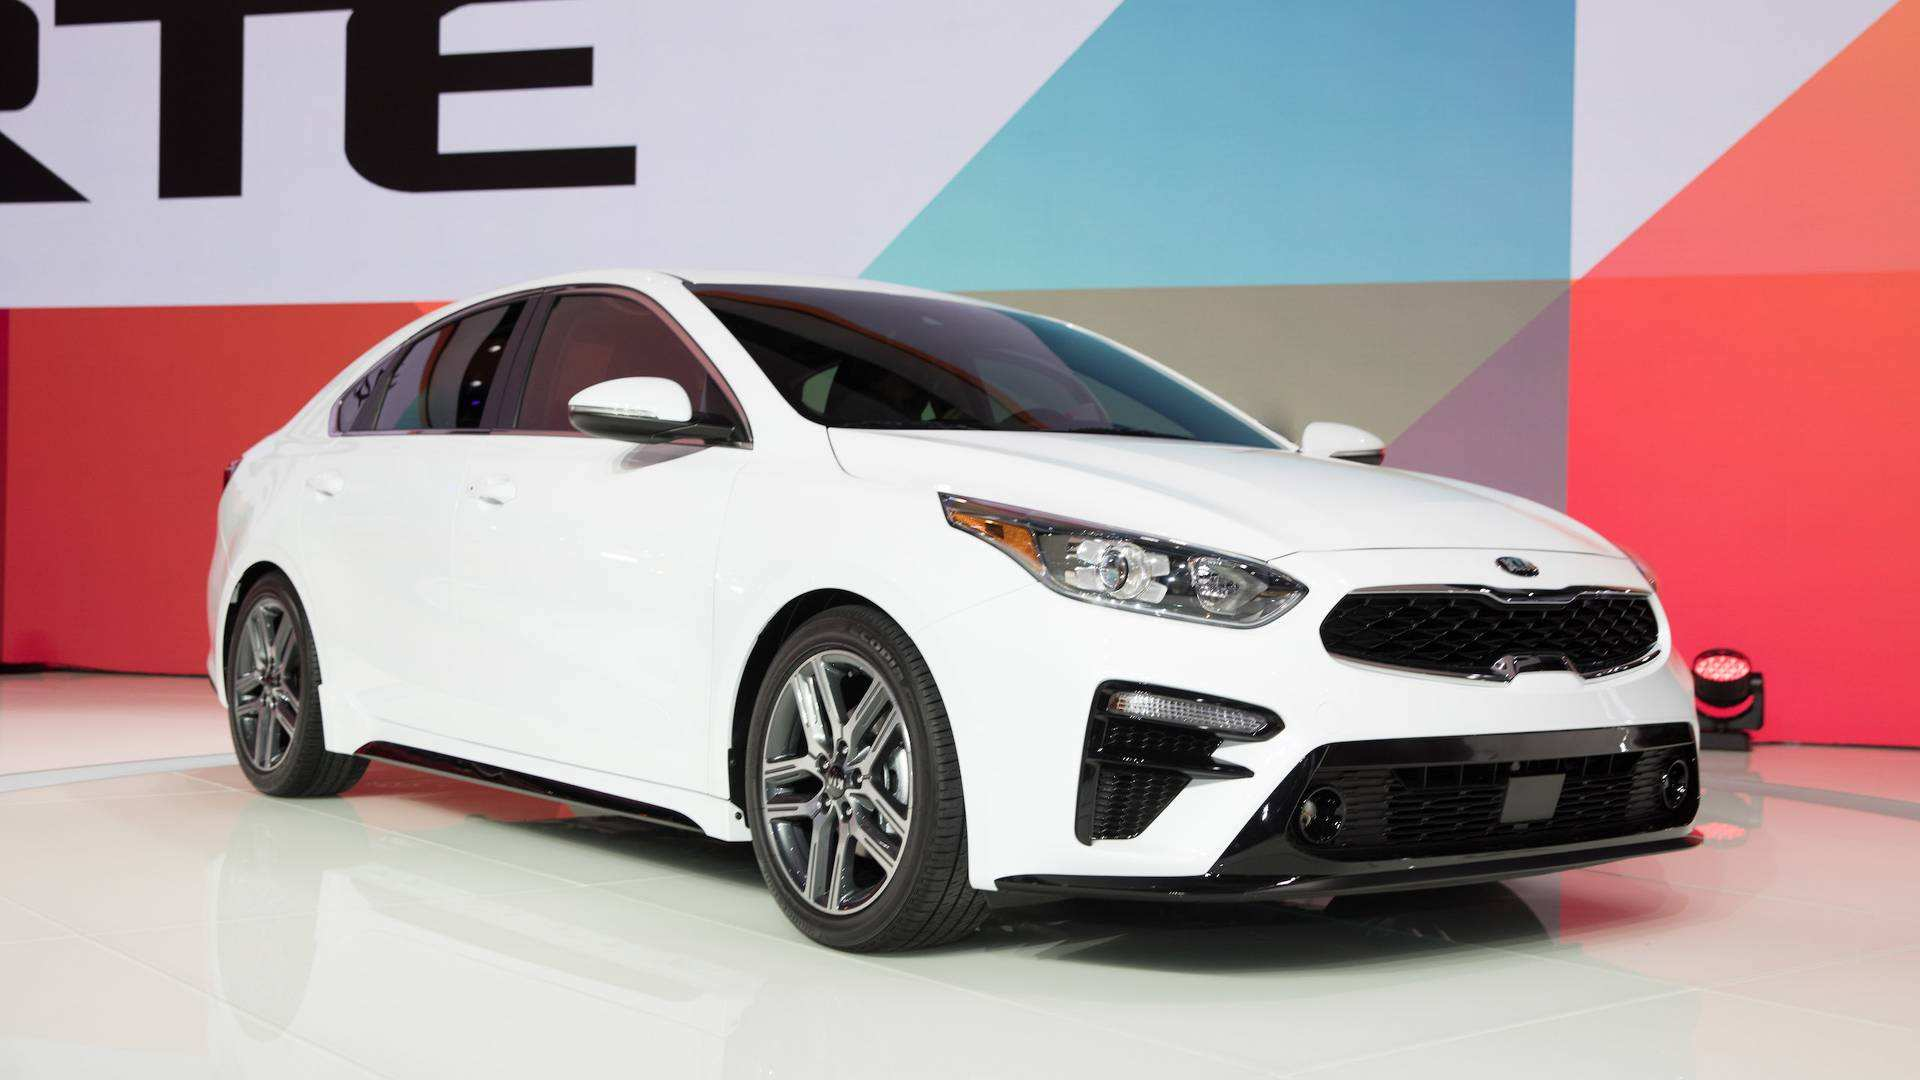 61 Great Kia Forte 2020 White Wallpaper with Kia Forte 2020 White